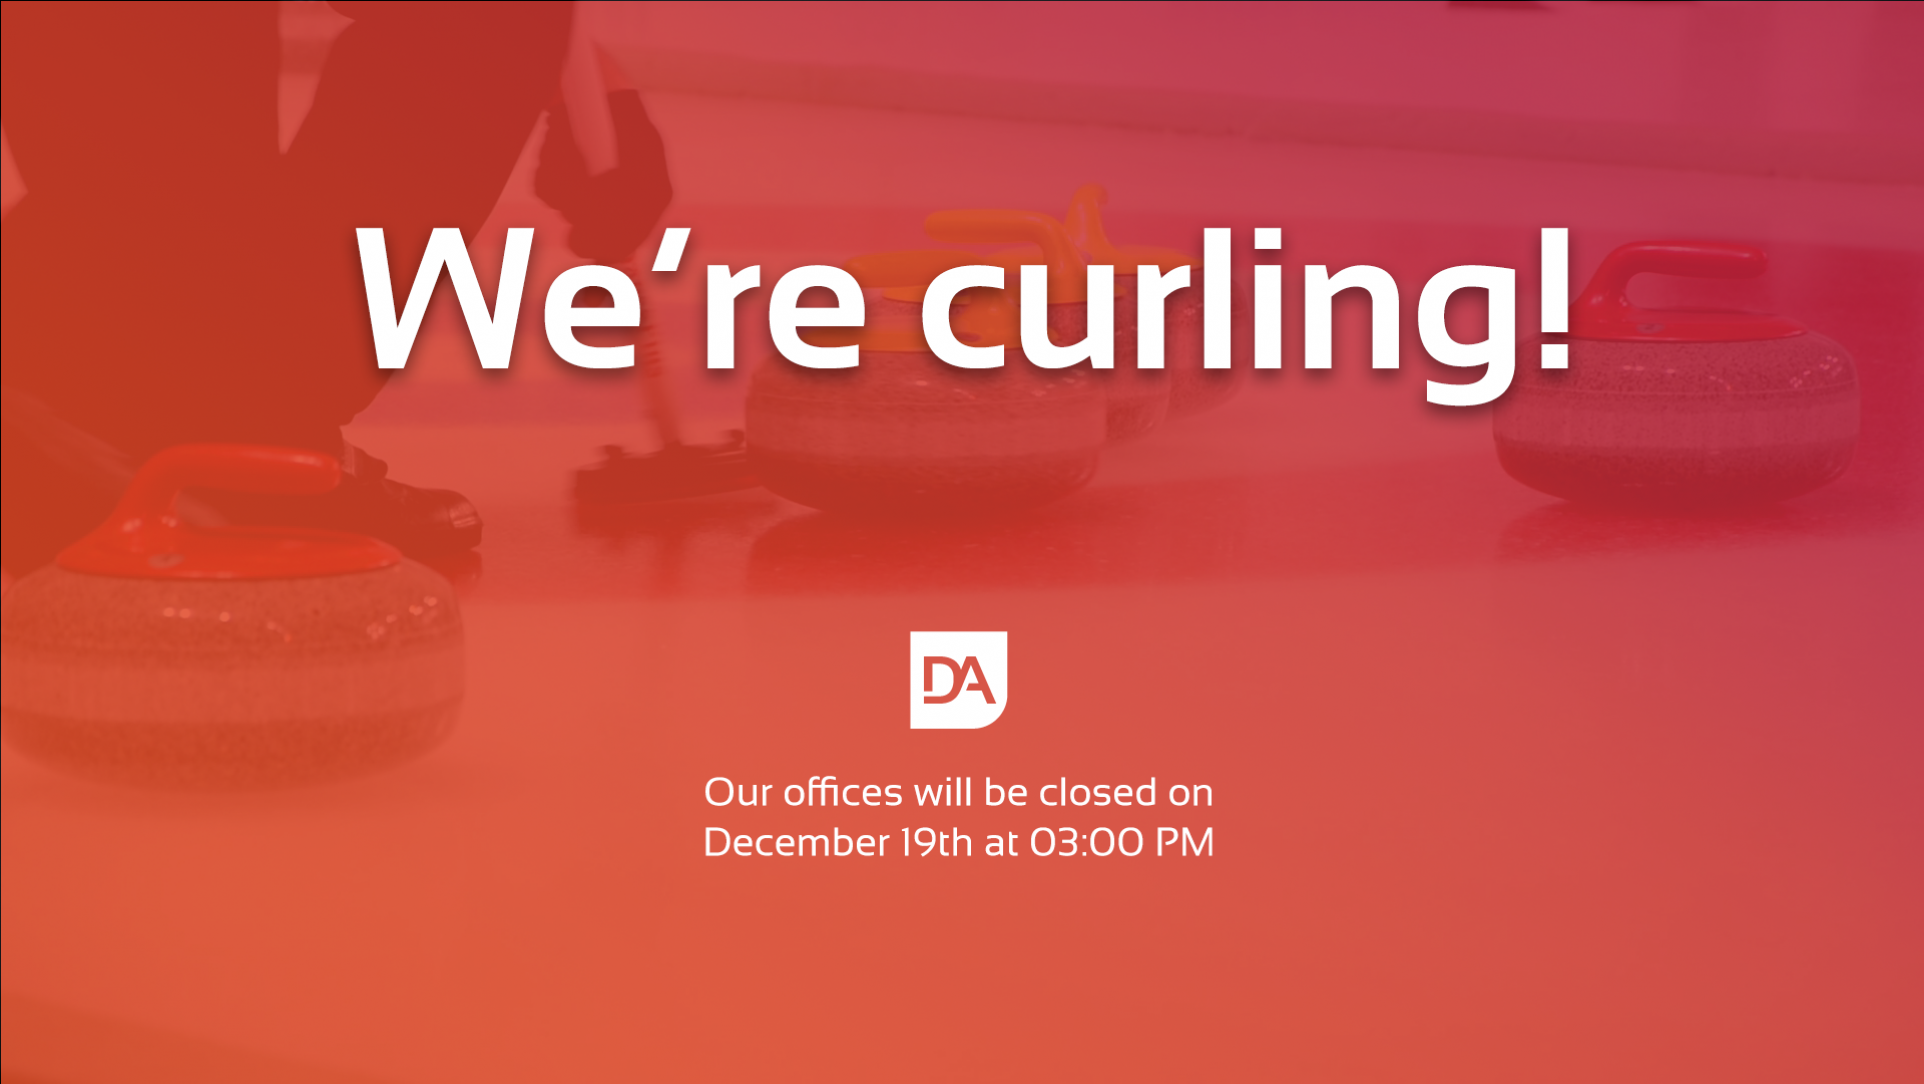 2019-12-17 Curling out of office Image